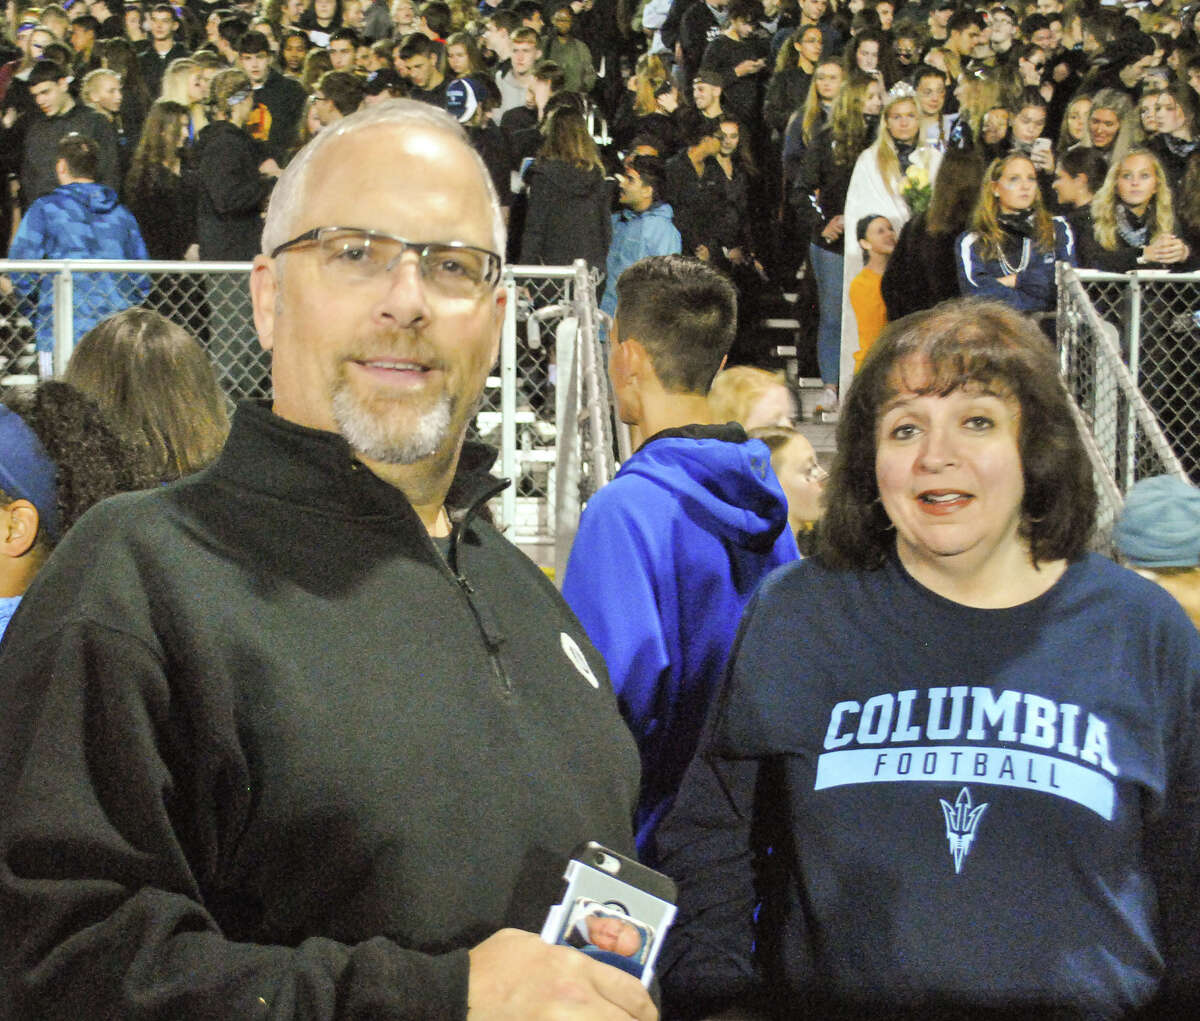 Were you Seen at the Columbia vs. Averill Park high school football game Sept. 28, 2018, at Columbia High School in East Greenbush, NY?